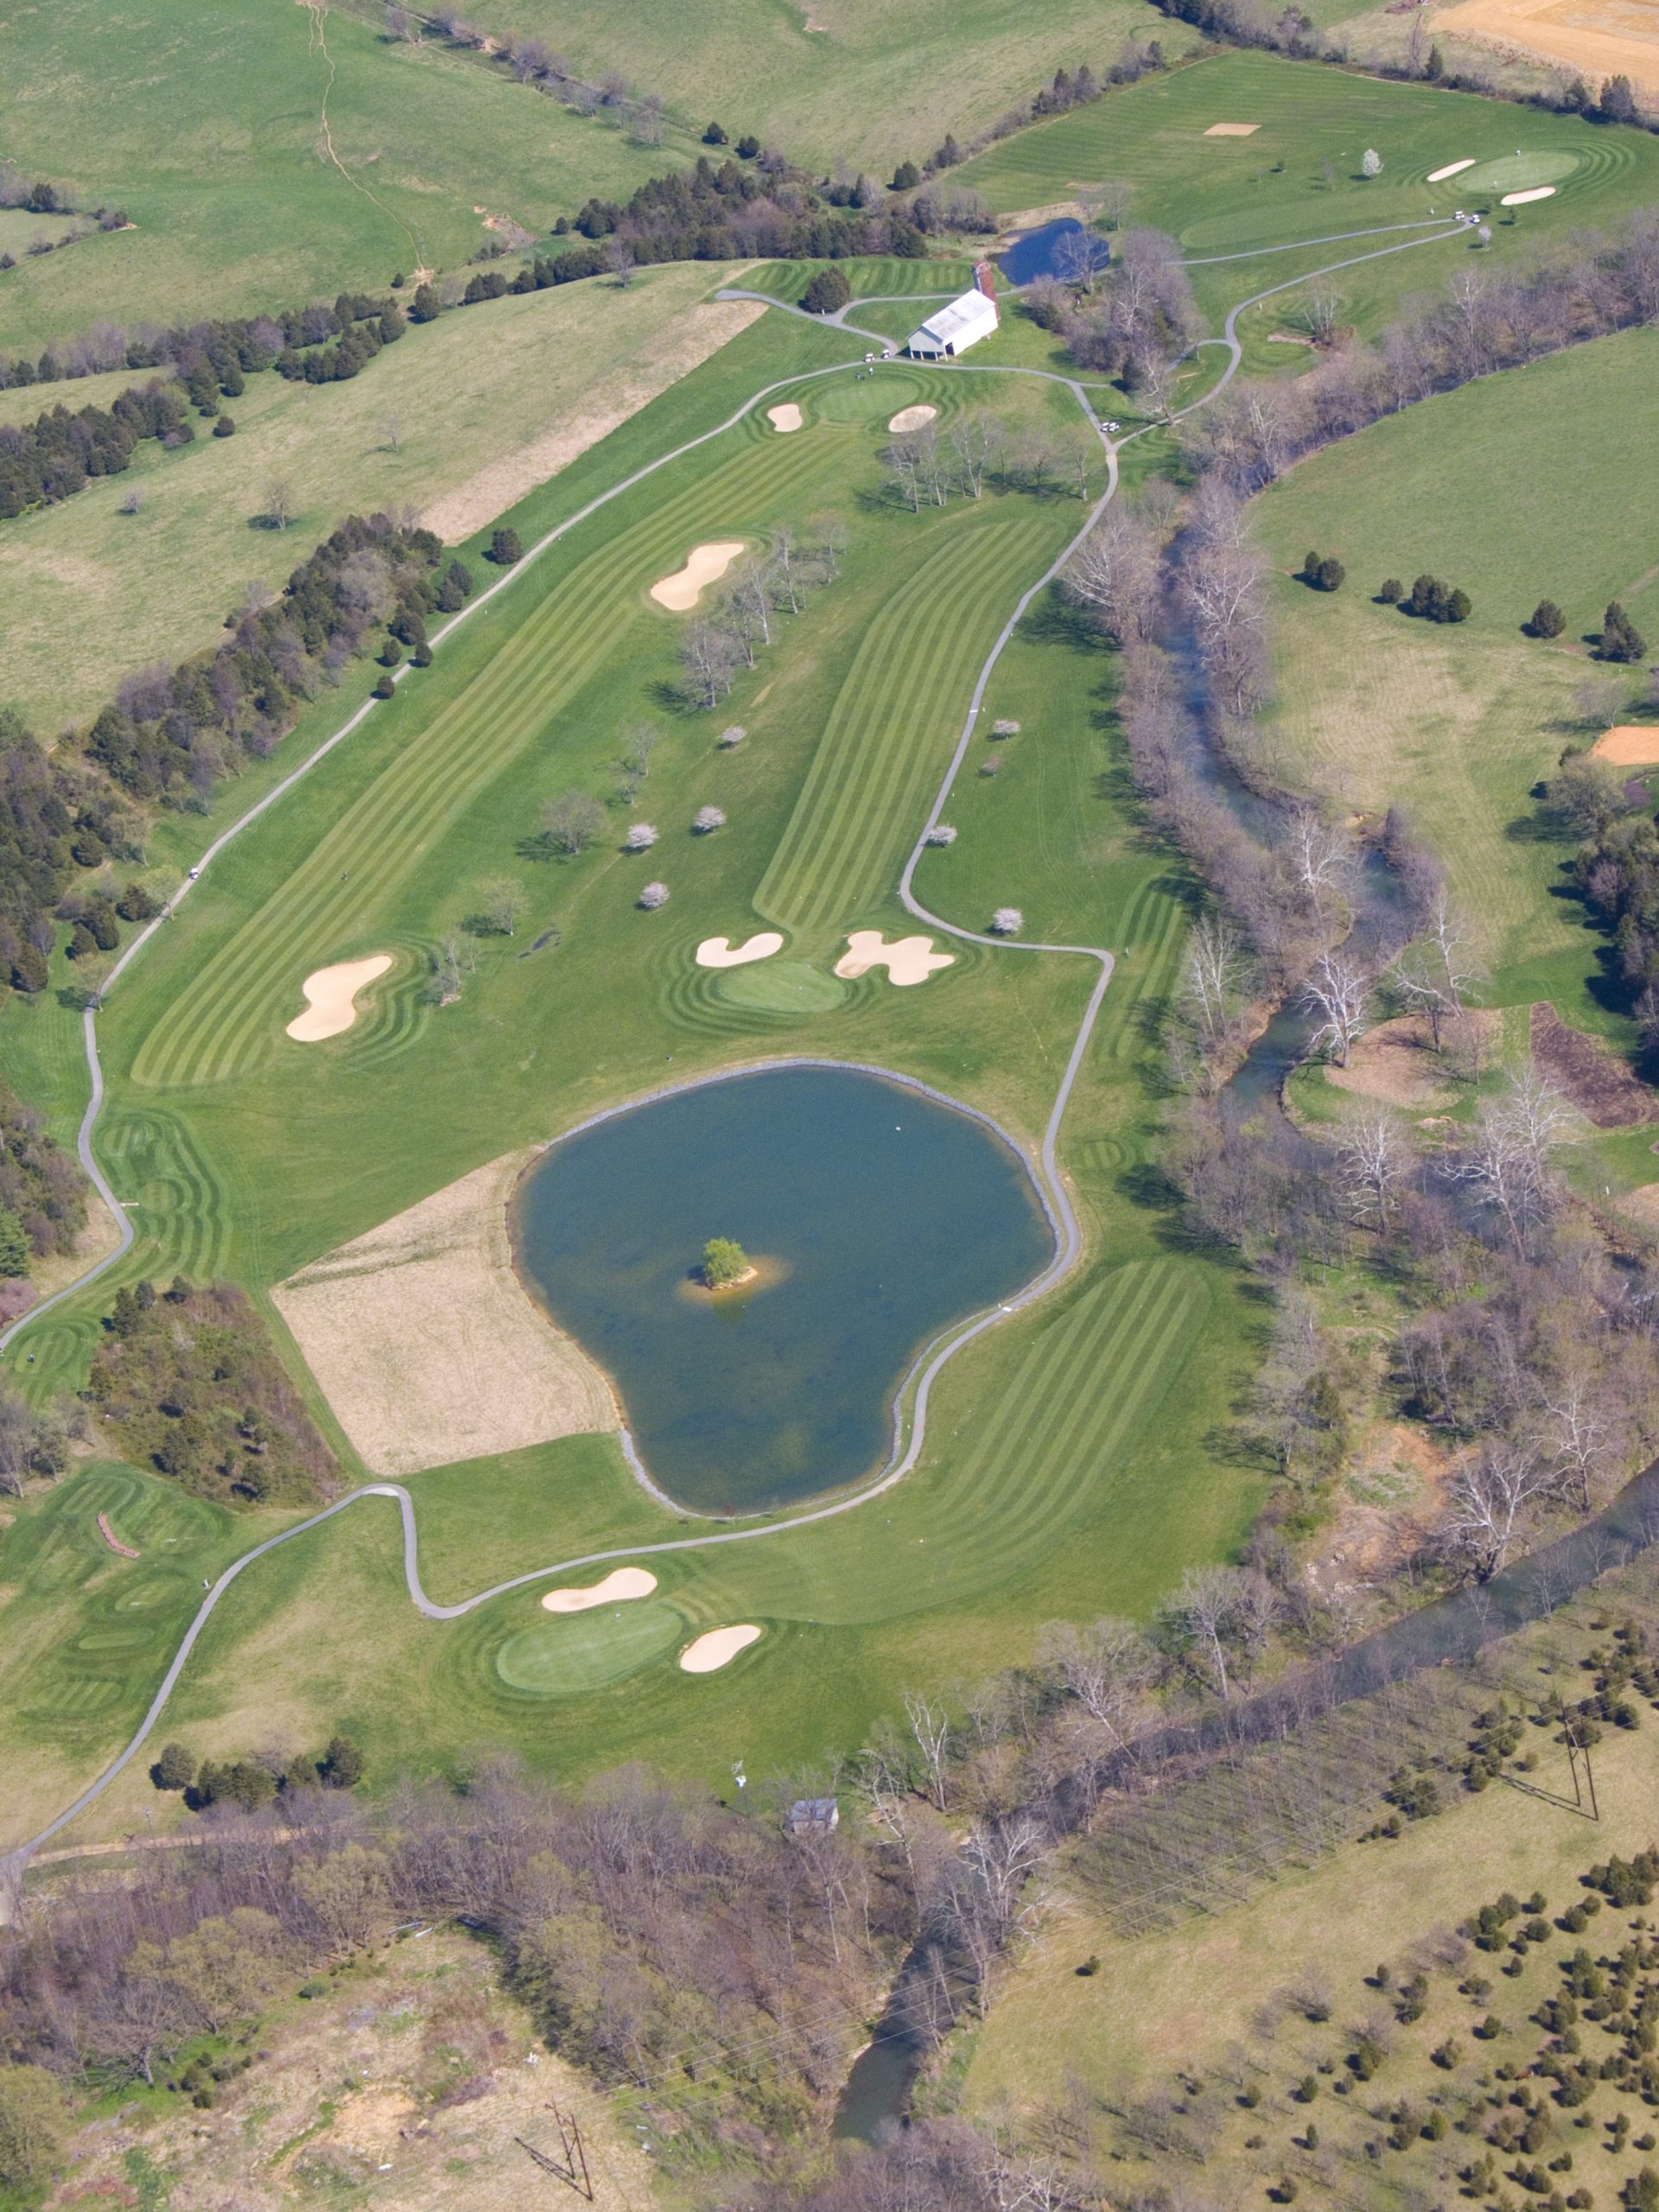 sky view of golf course